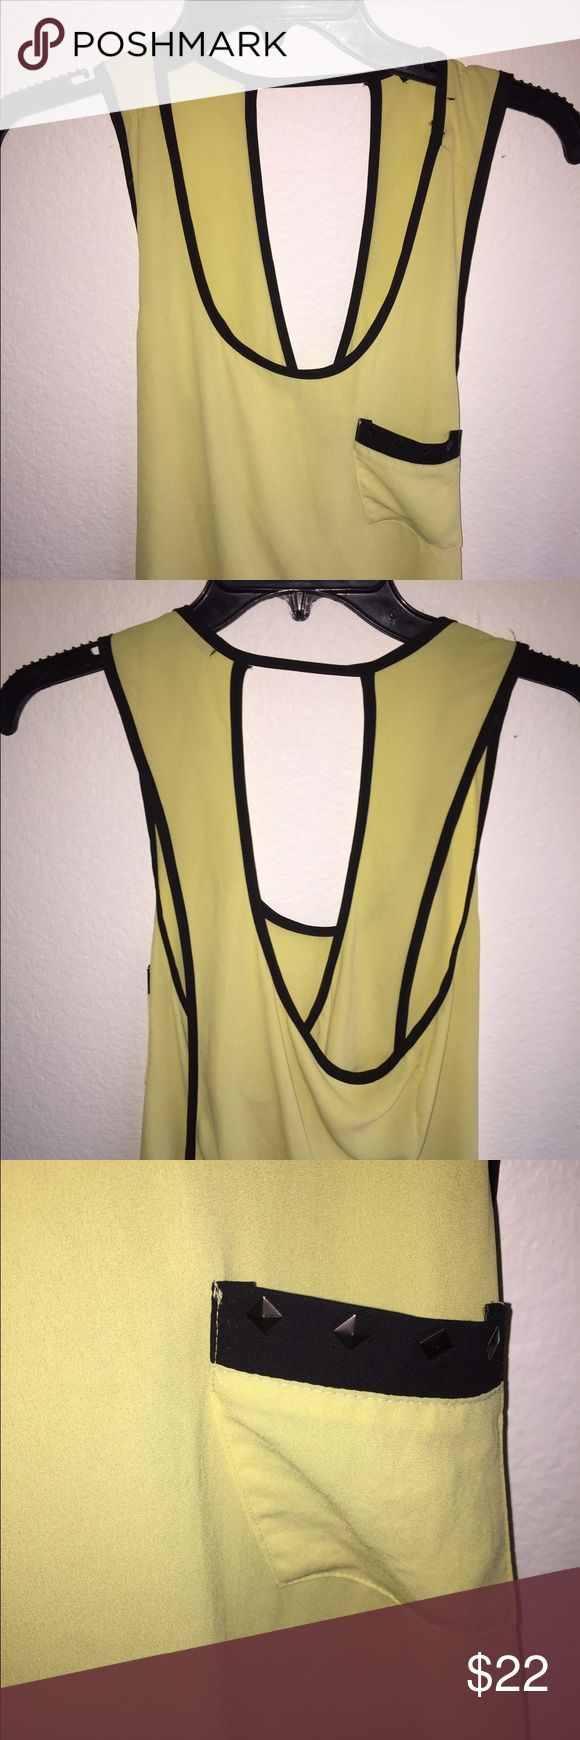 Tank top Black and yellow tank top blouse Tops Blouses